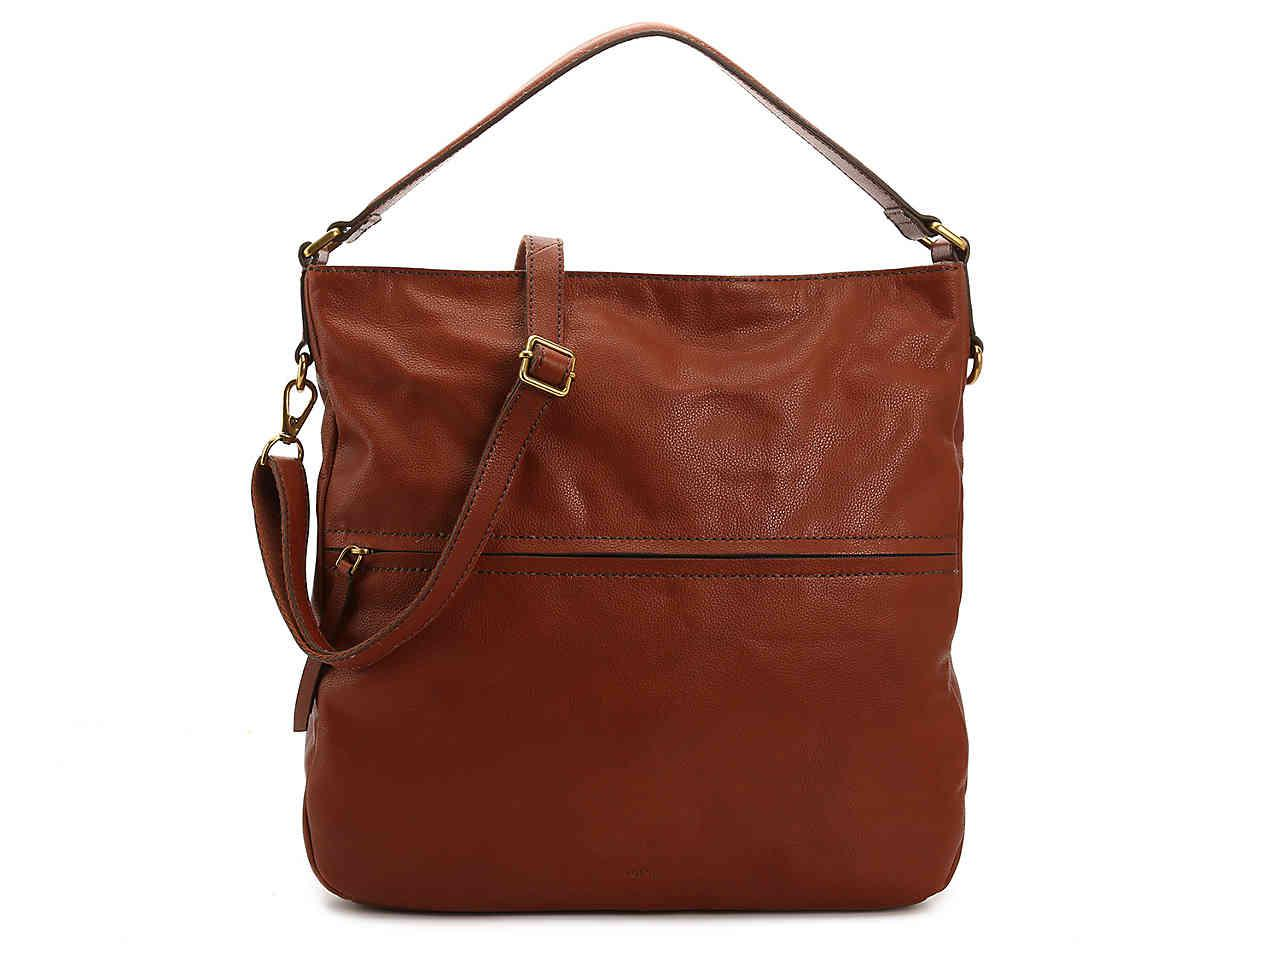 Lyst - Fossil Corey Leather Hobo Bag in Brown c192c656e0